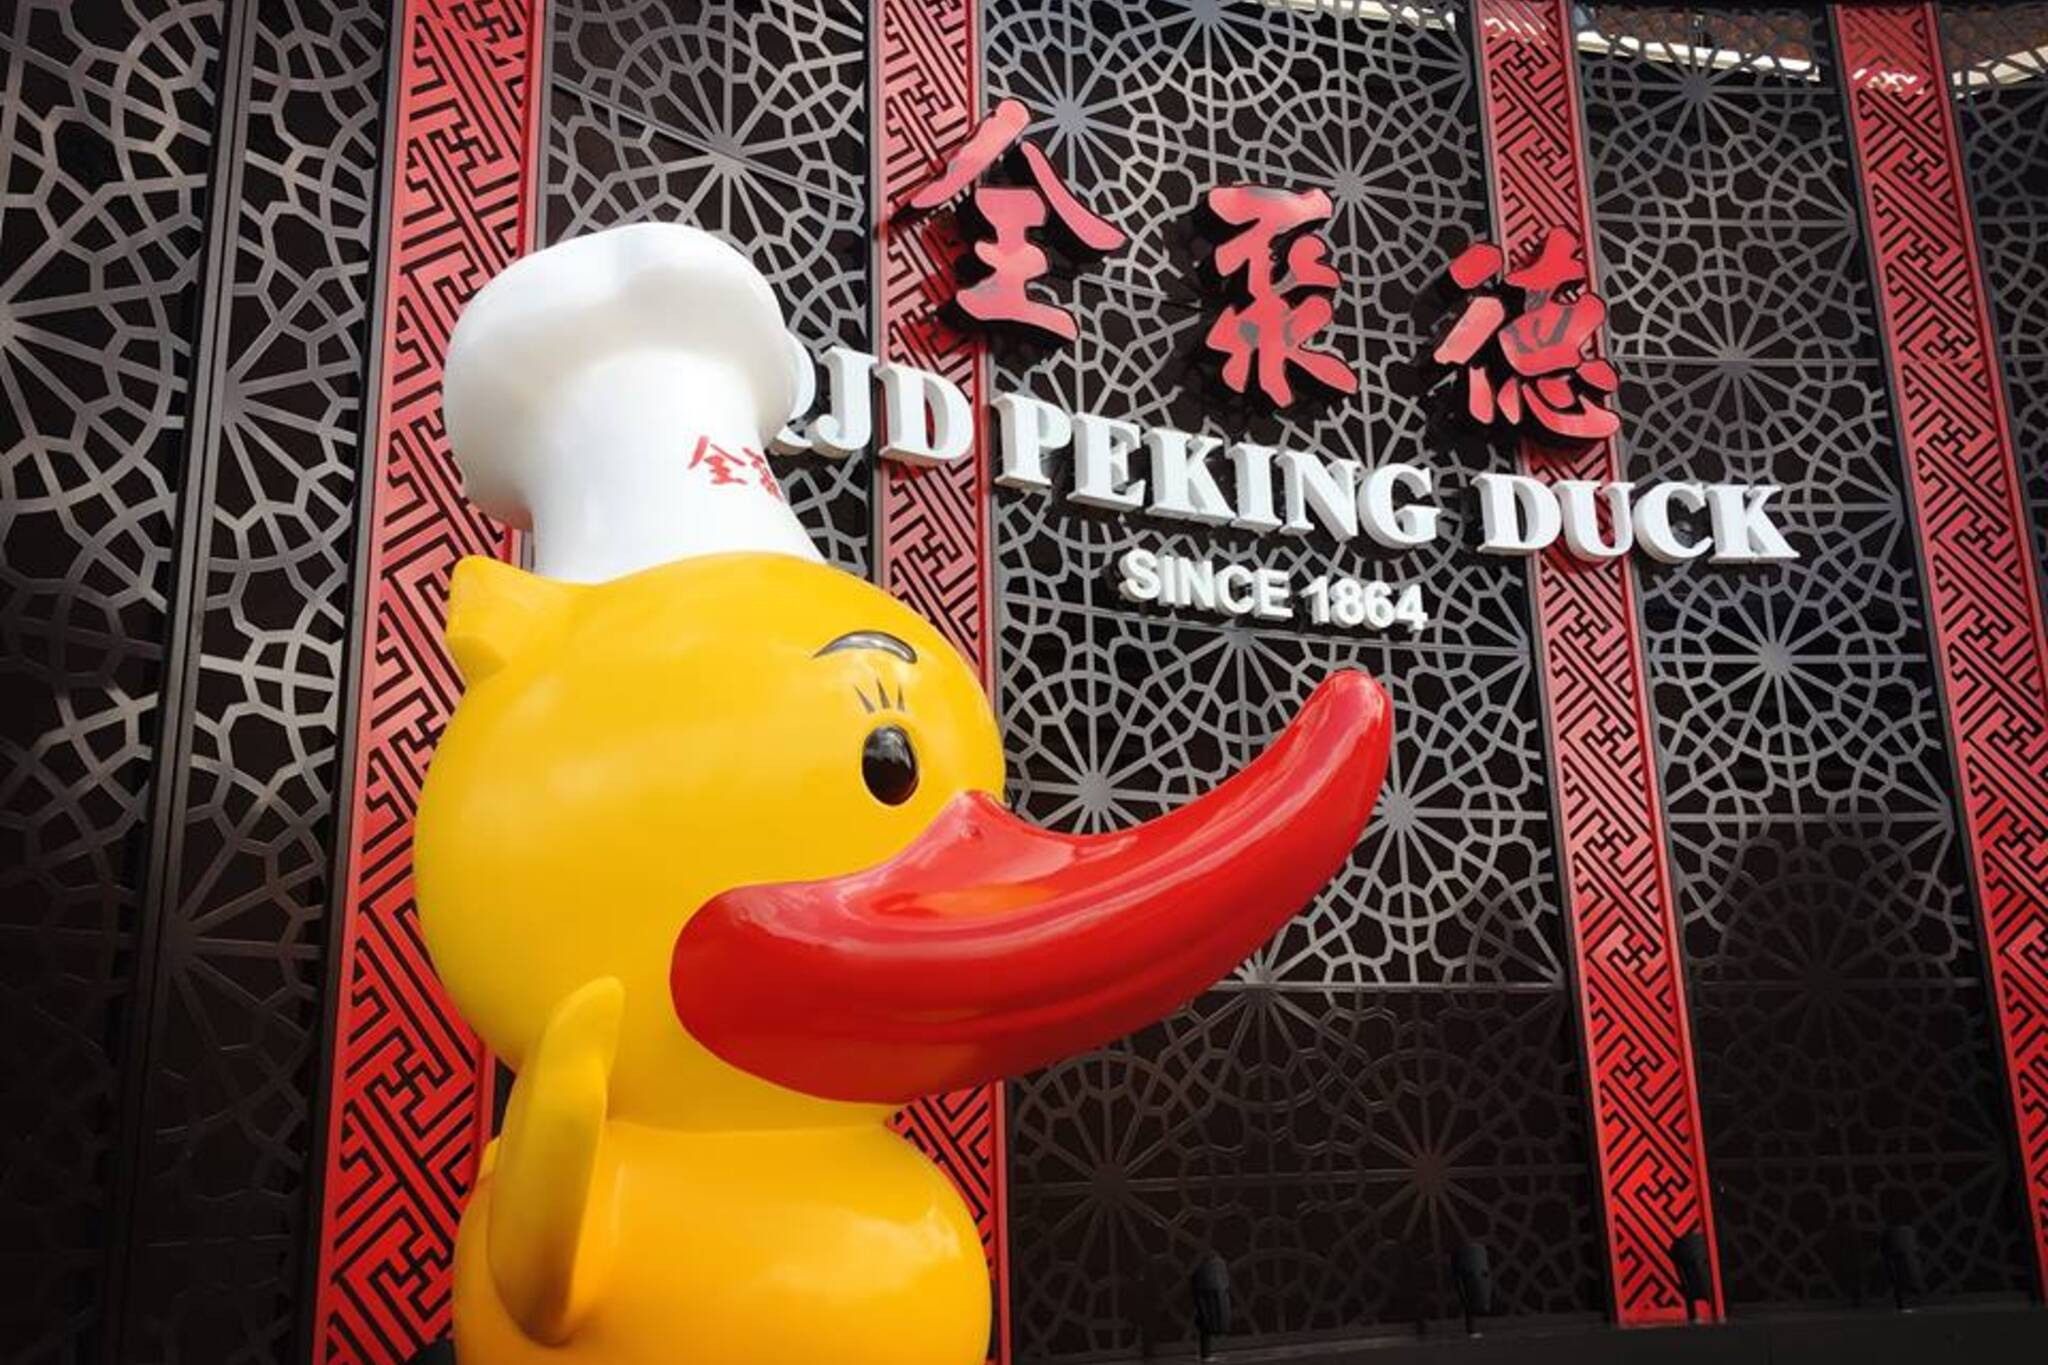 qjd peking duck